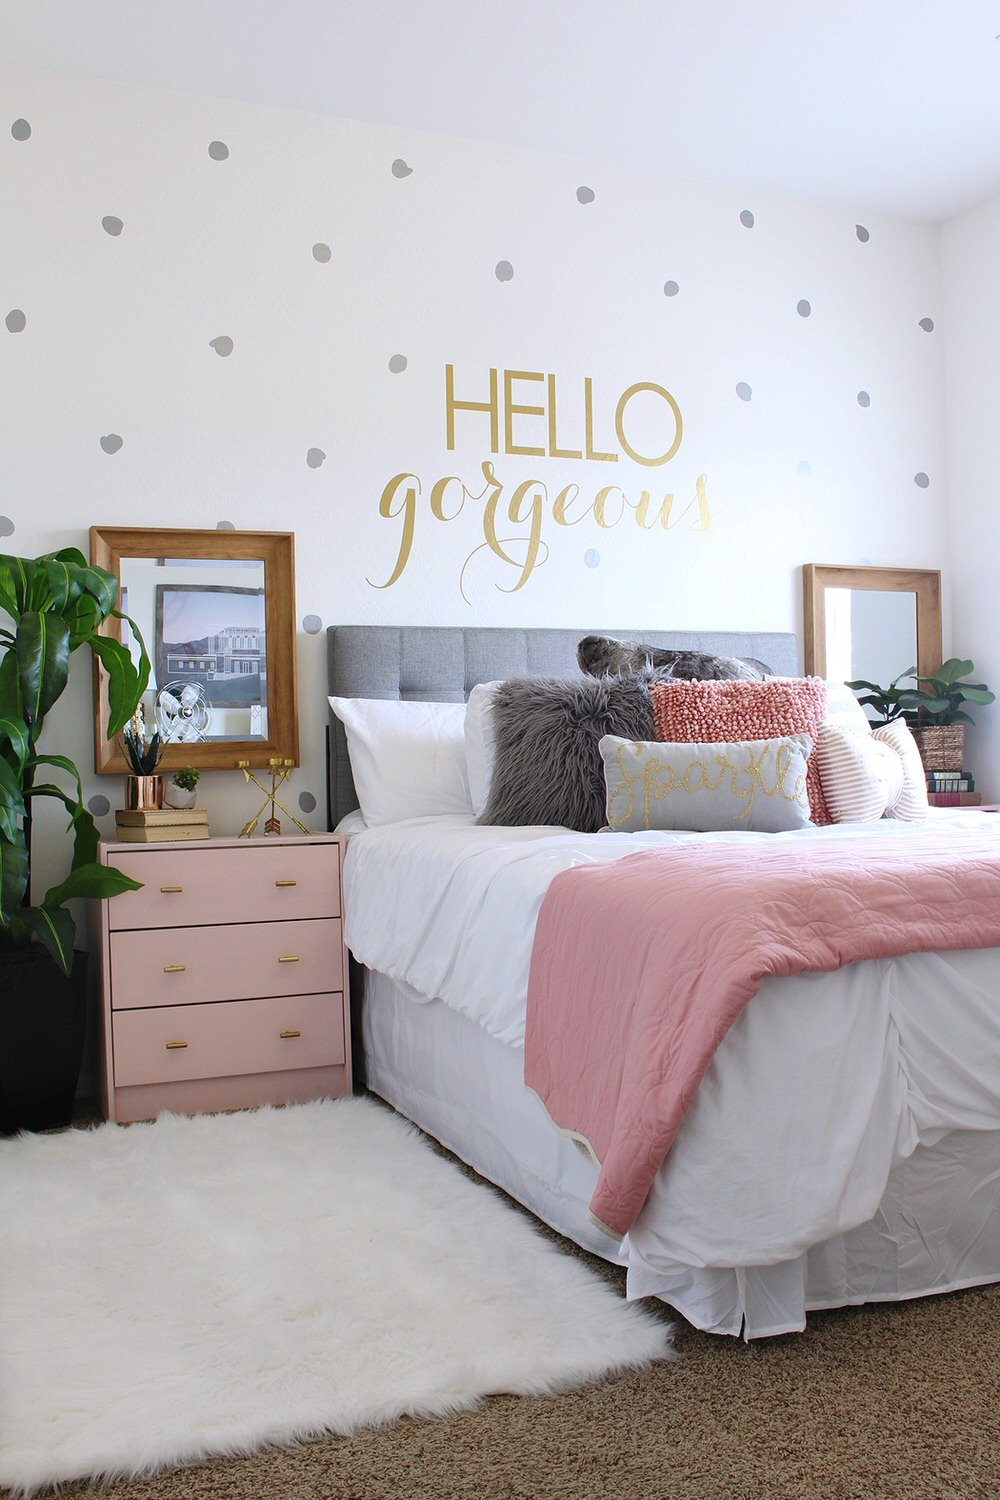 Kids Rooms Archives • The Budget Decorator